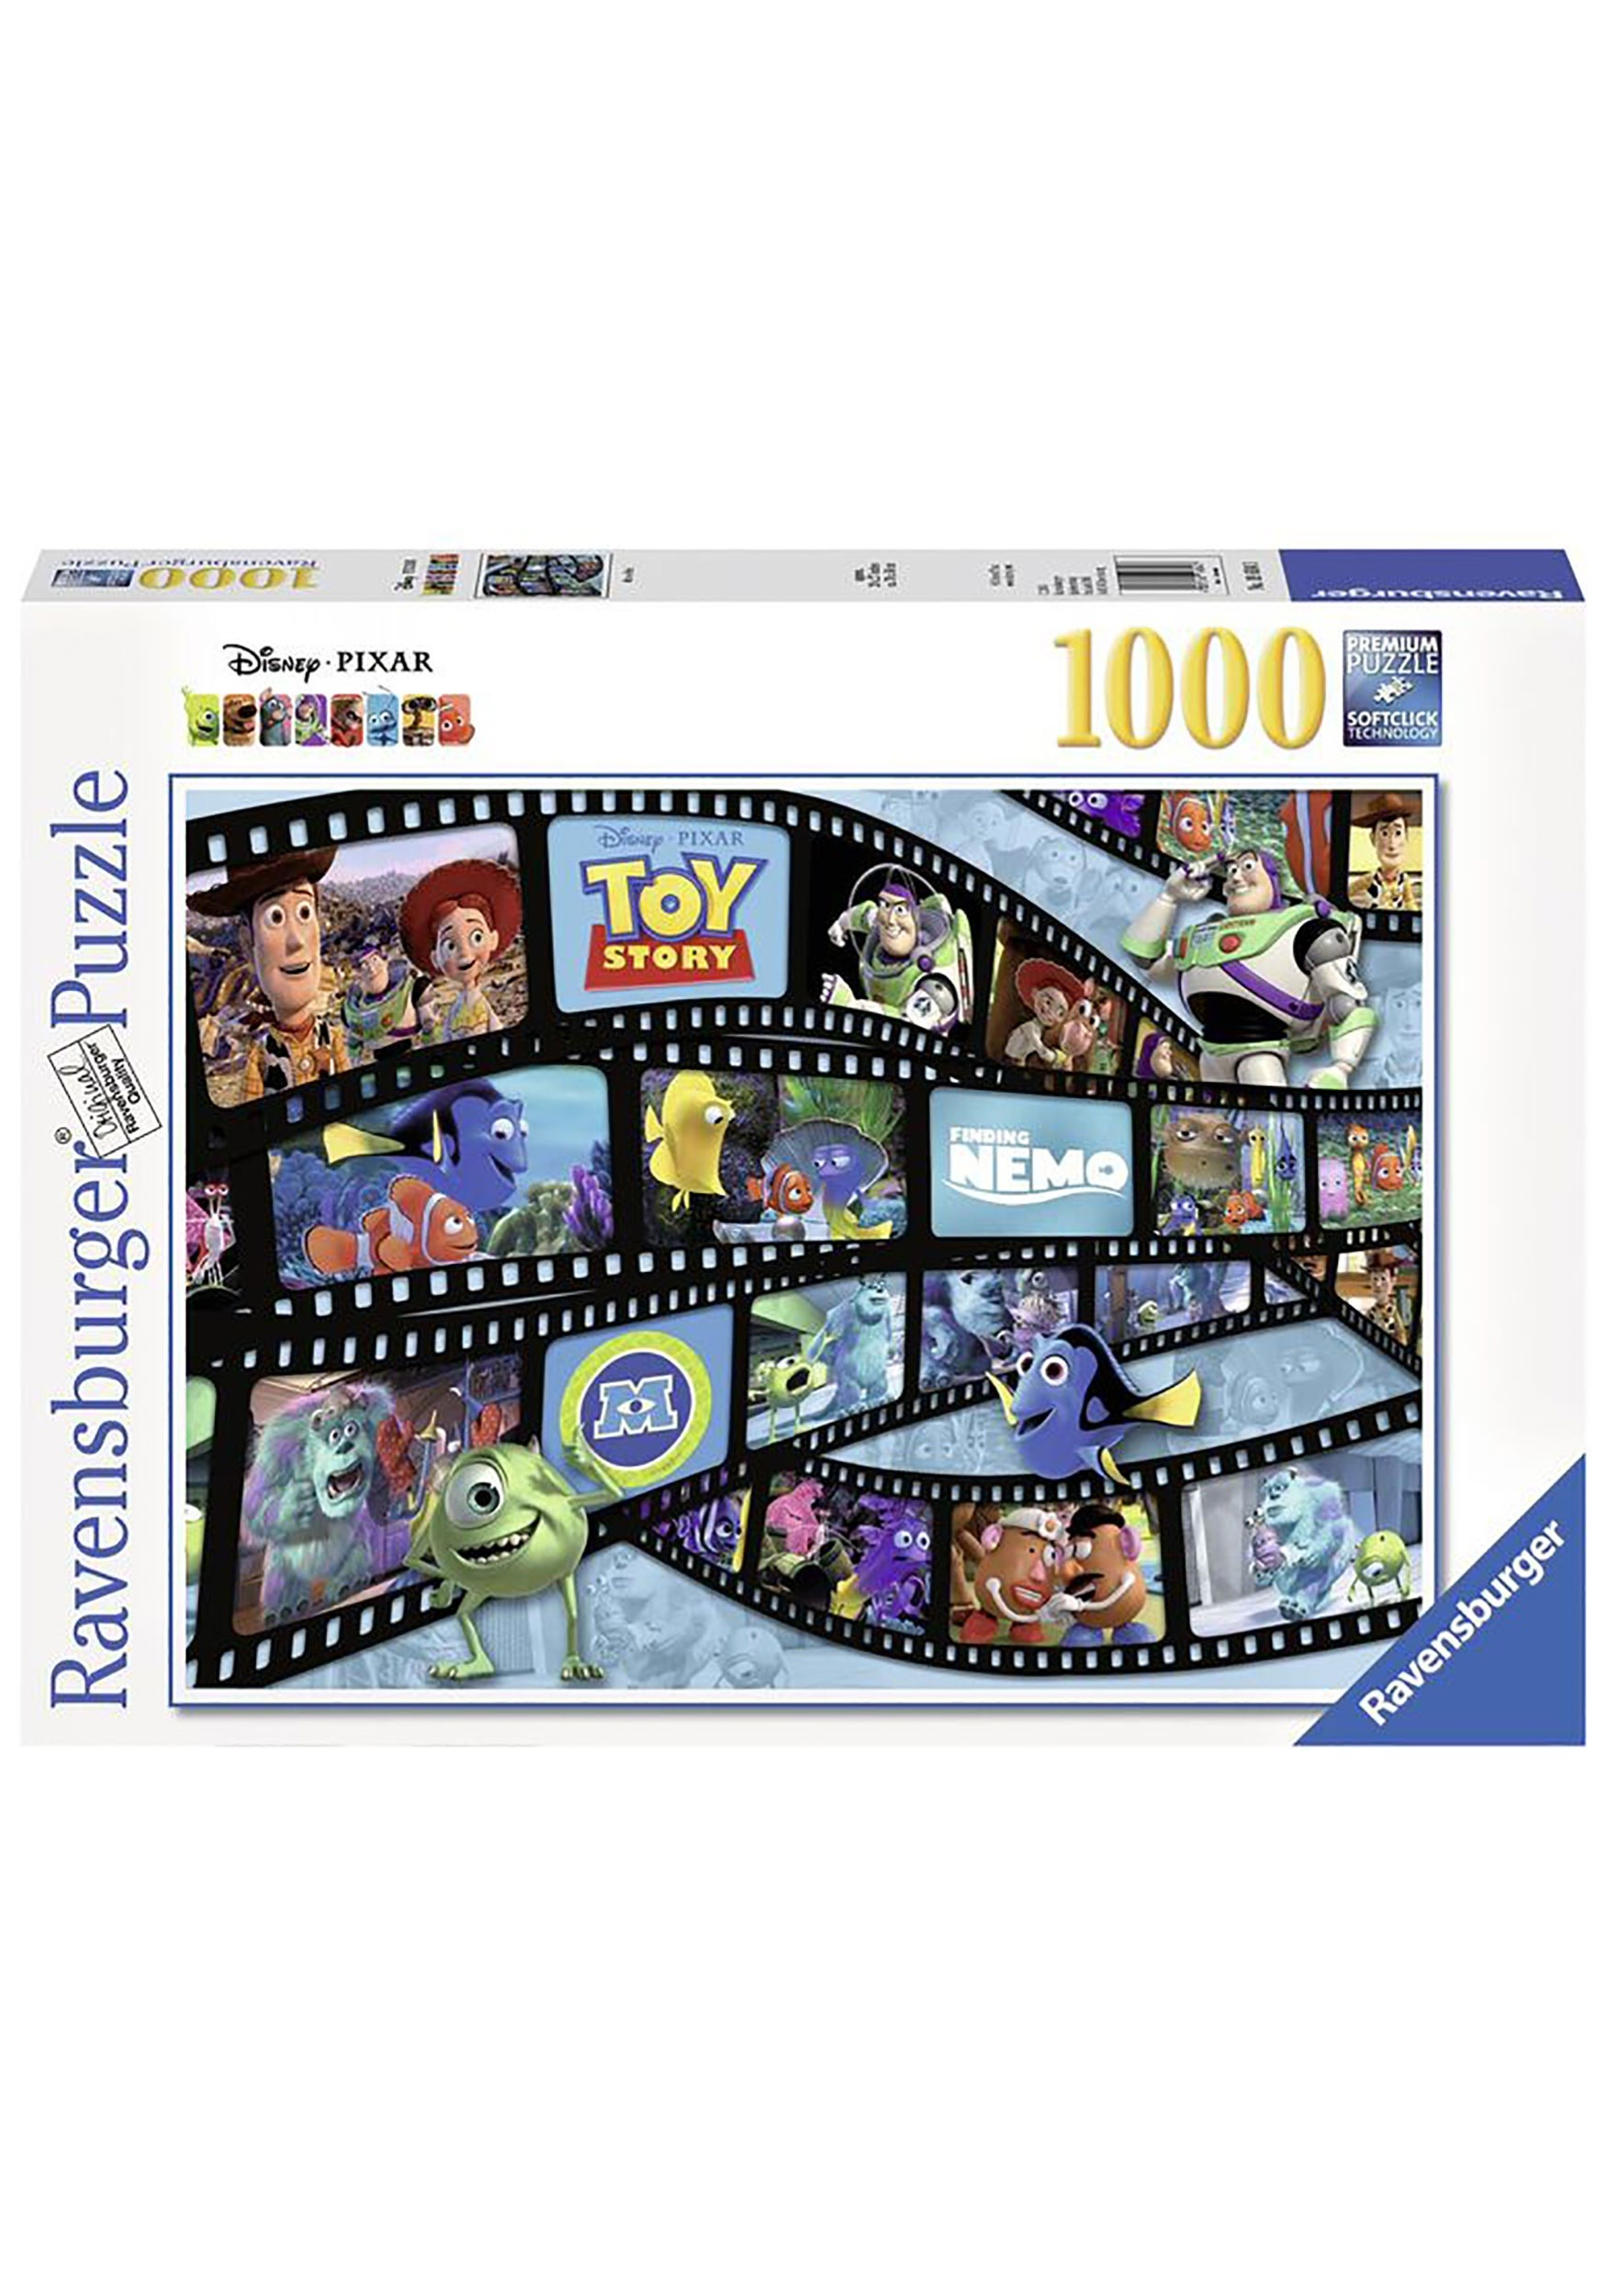 PIXAR MOVIE REEL 1000 PC JIGSAW PUZZLE